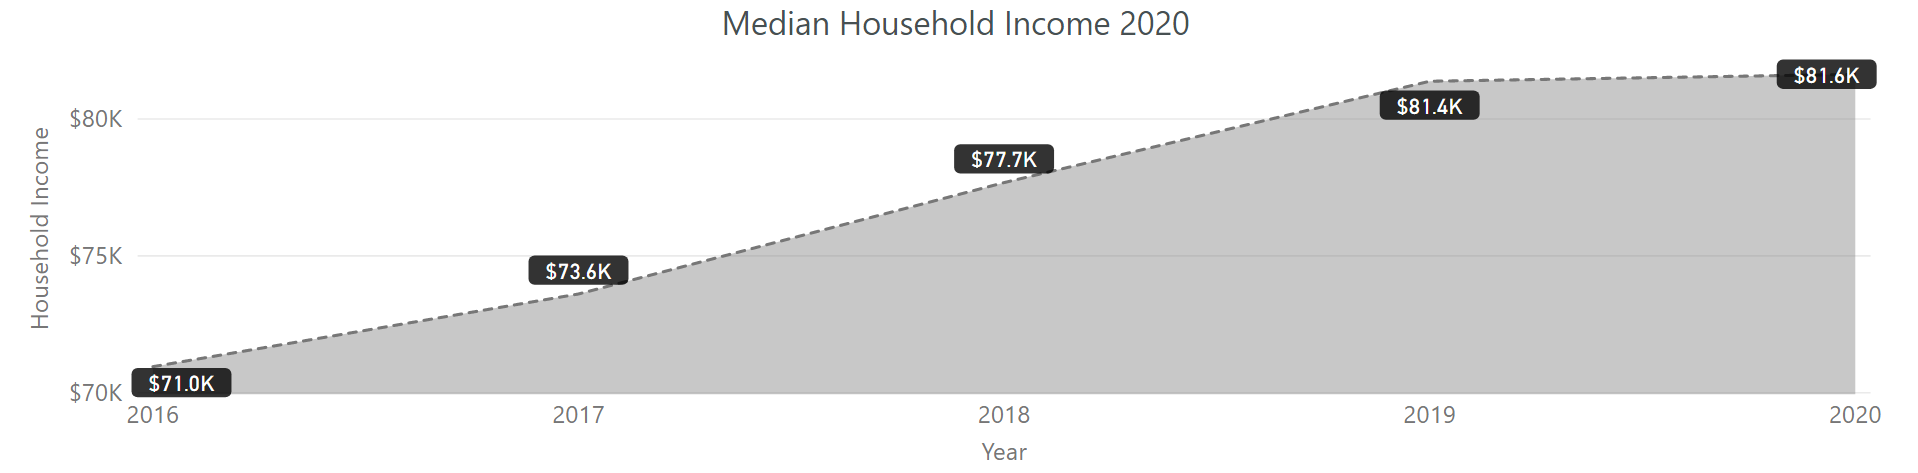 graph of median household income from 2016 to 2020. The rate has increased steadily.